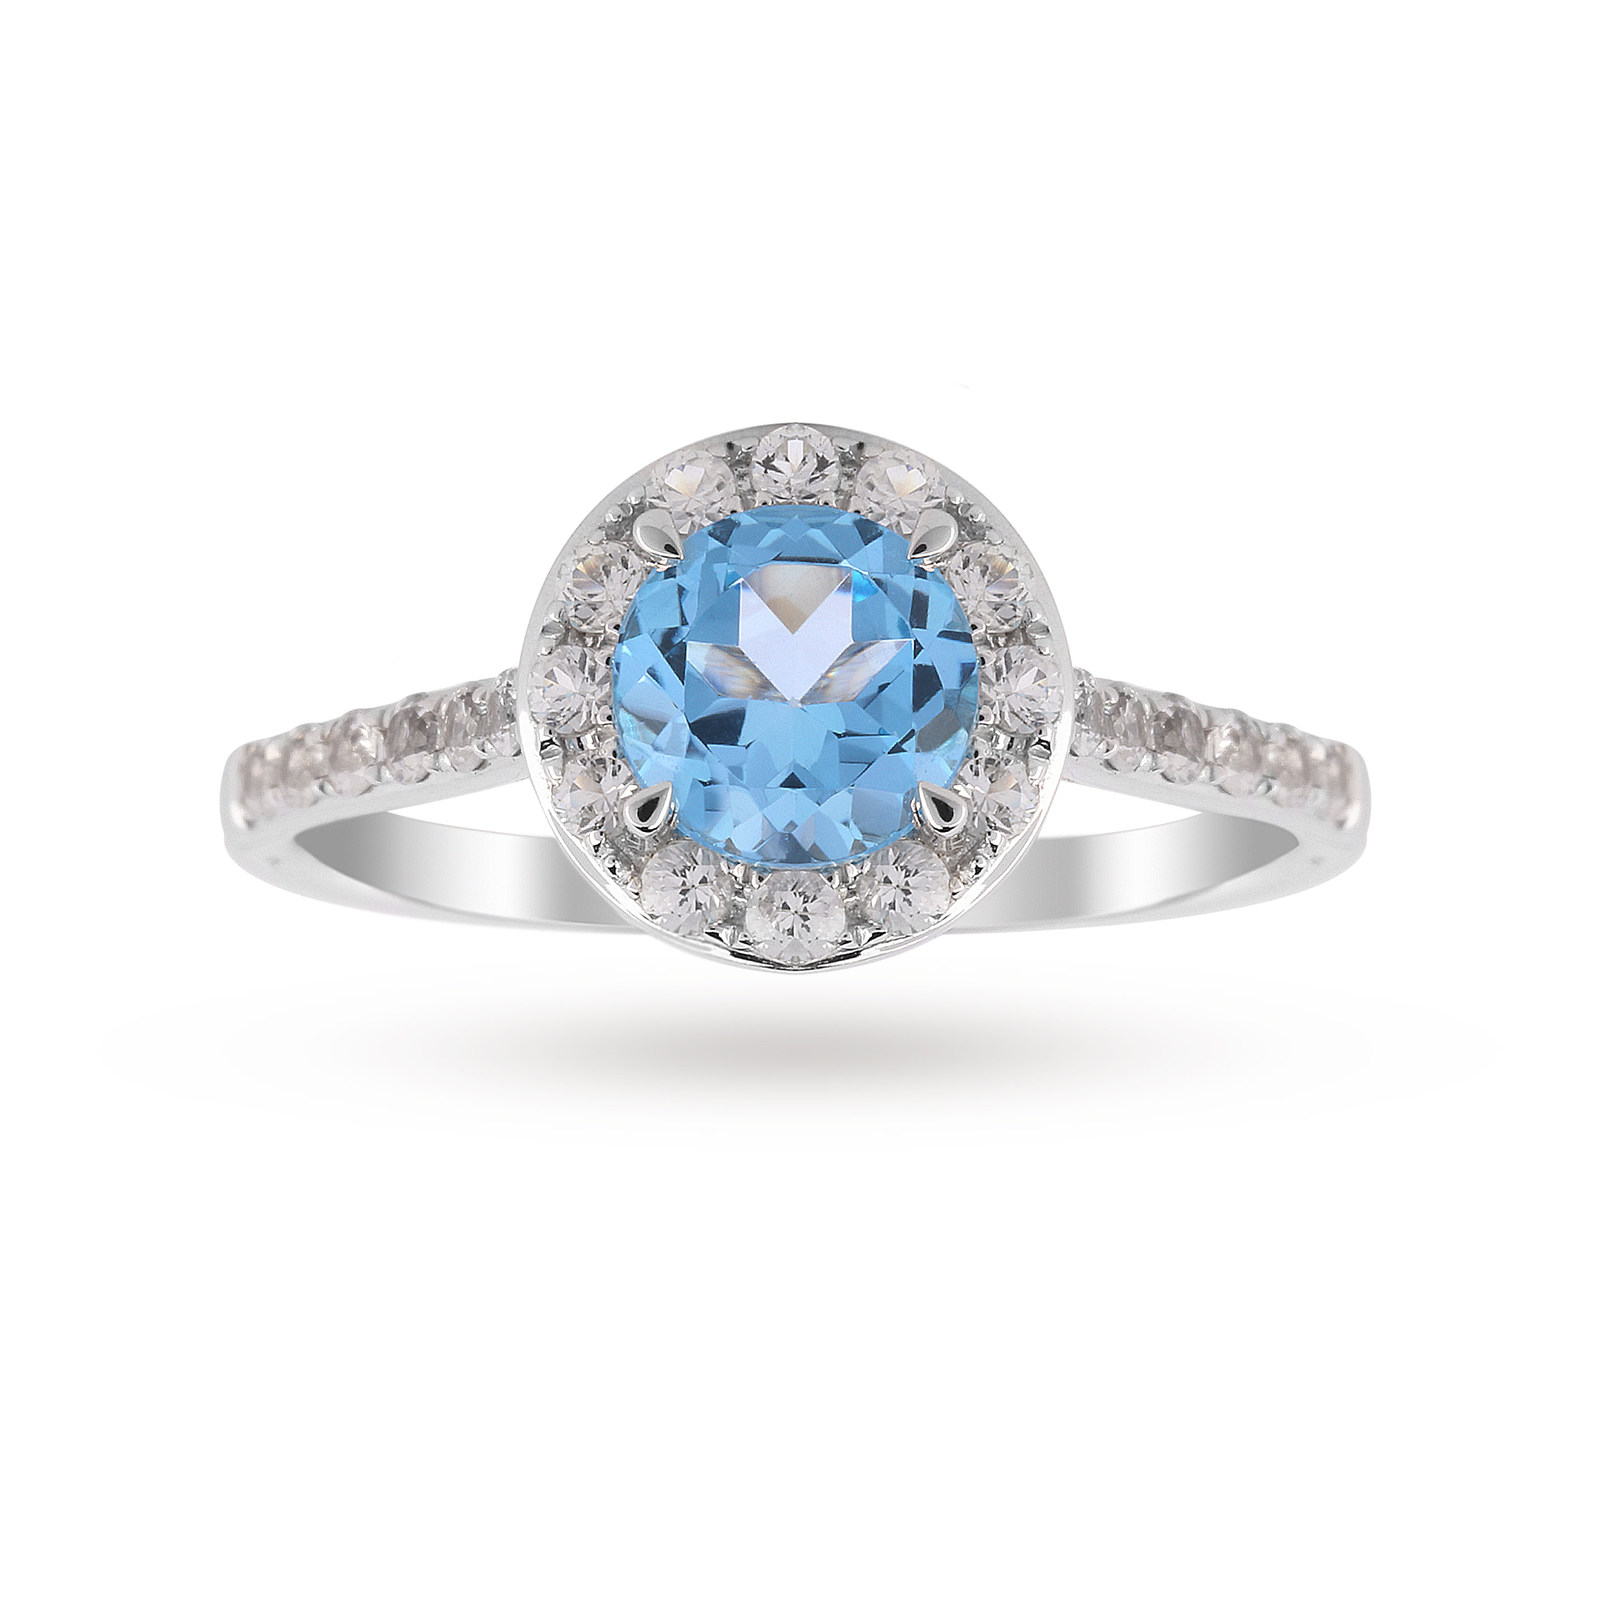 9ct White Gold 6x6mm Blue Topaz And Diamond Round Halo Ring - Ring Size J